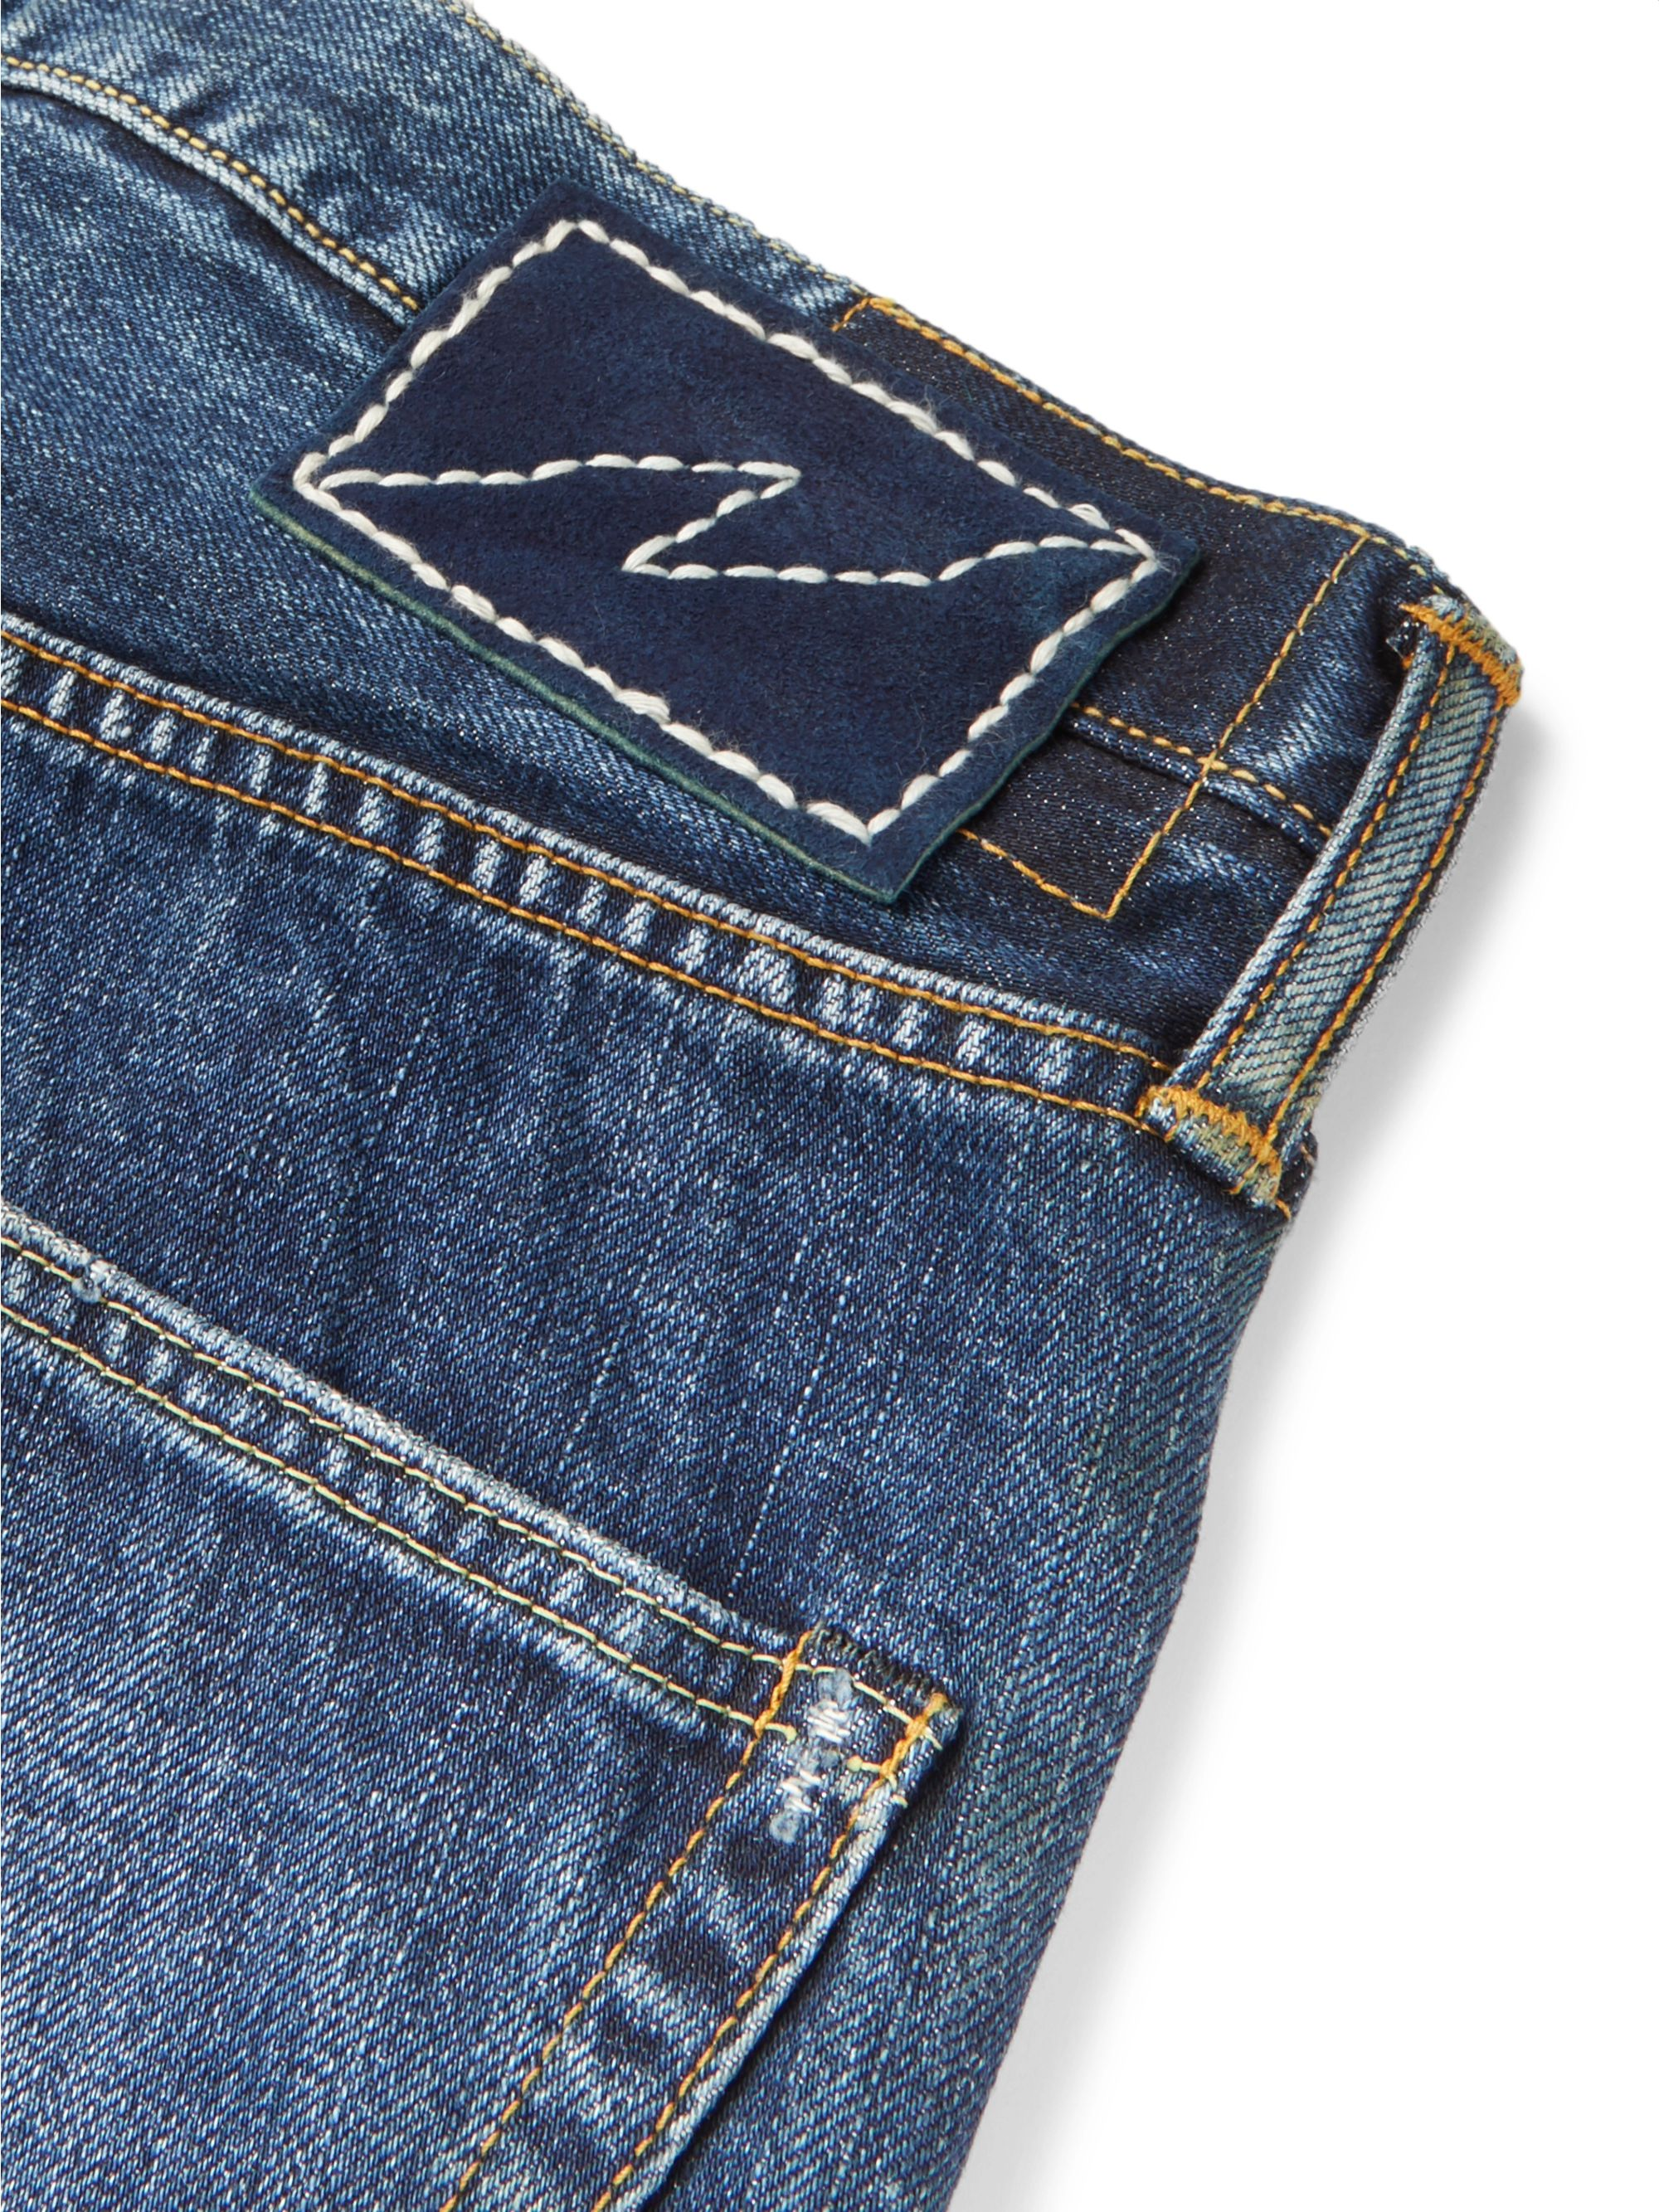 visvim Social Sculpture 3 Dry Denim Jeans